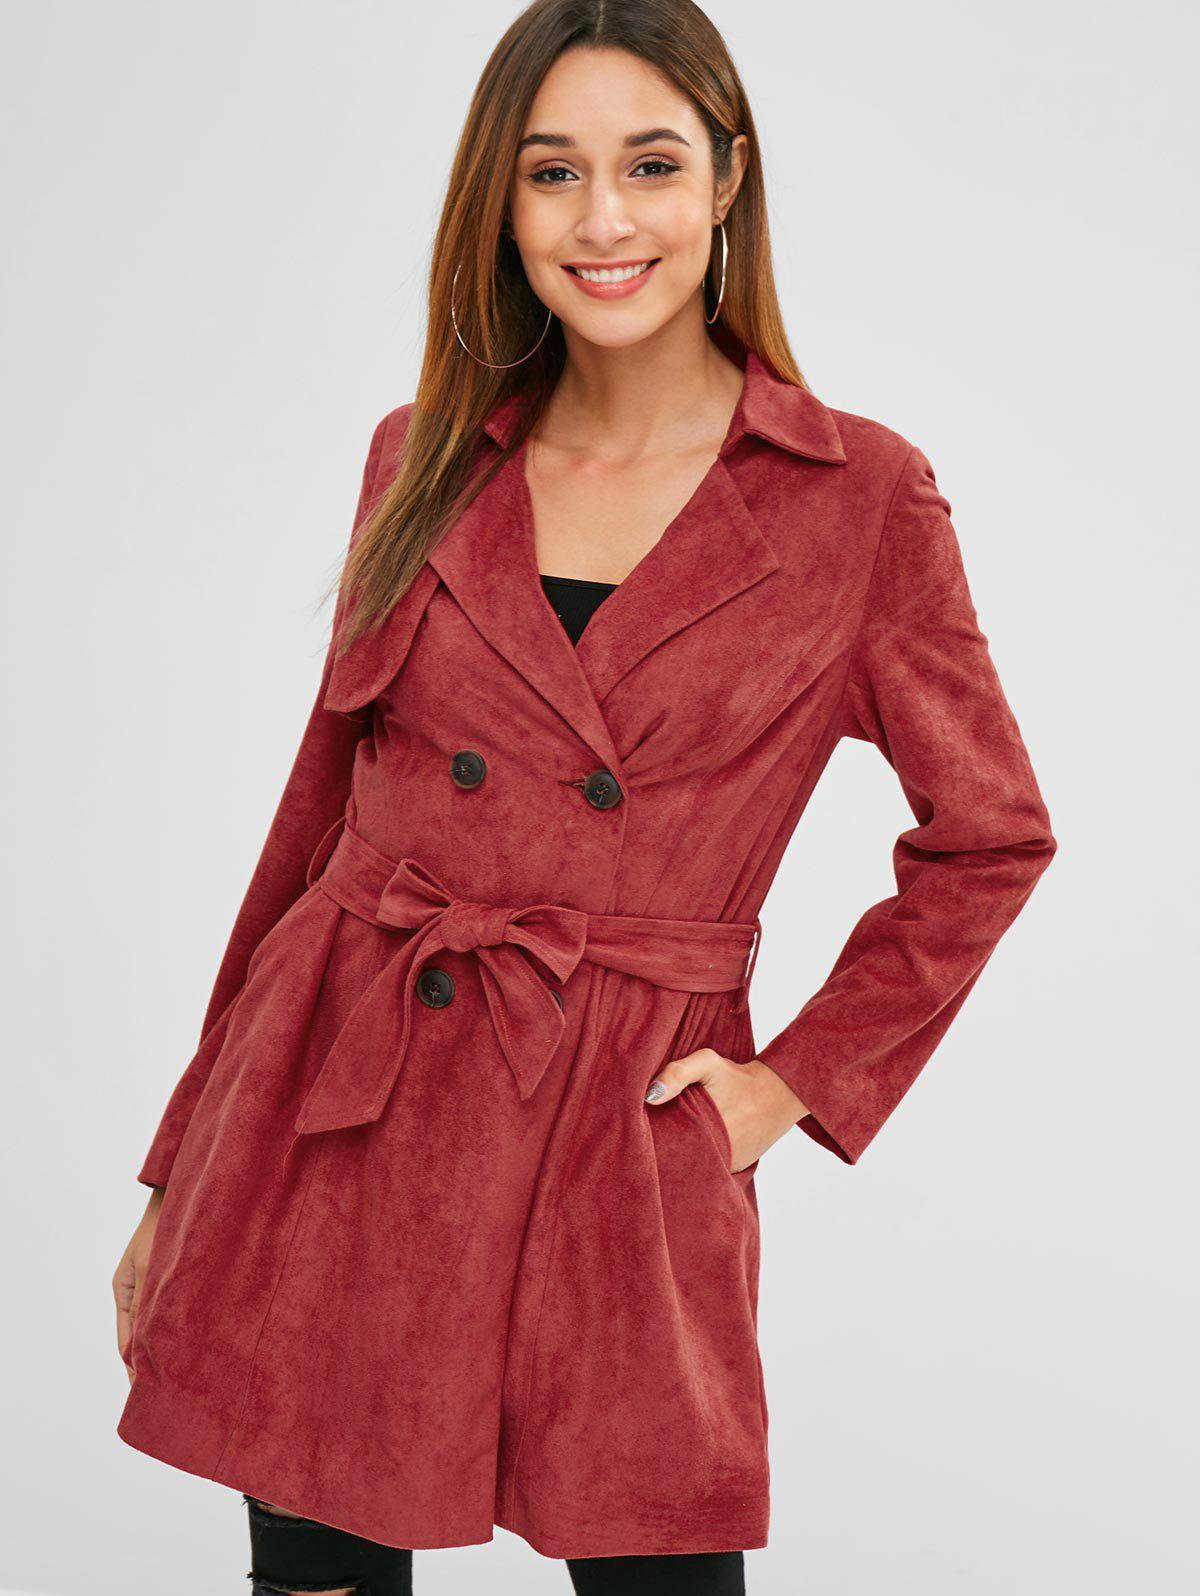 ZAFUL Double Breasted Faux Suede Trench Coat thumbnail